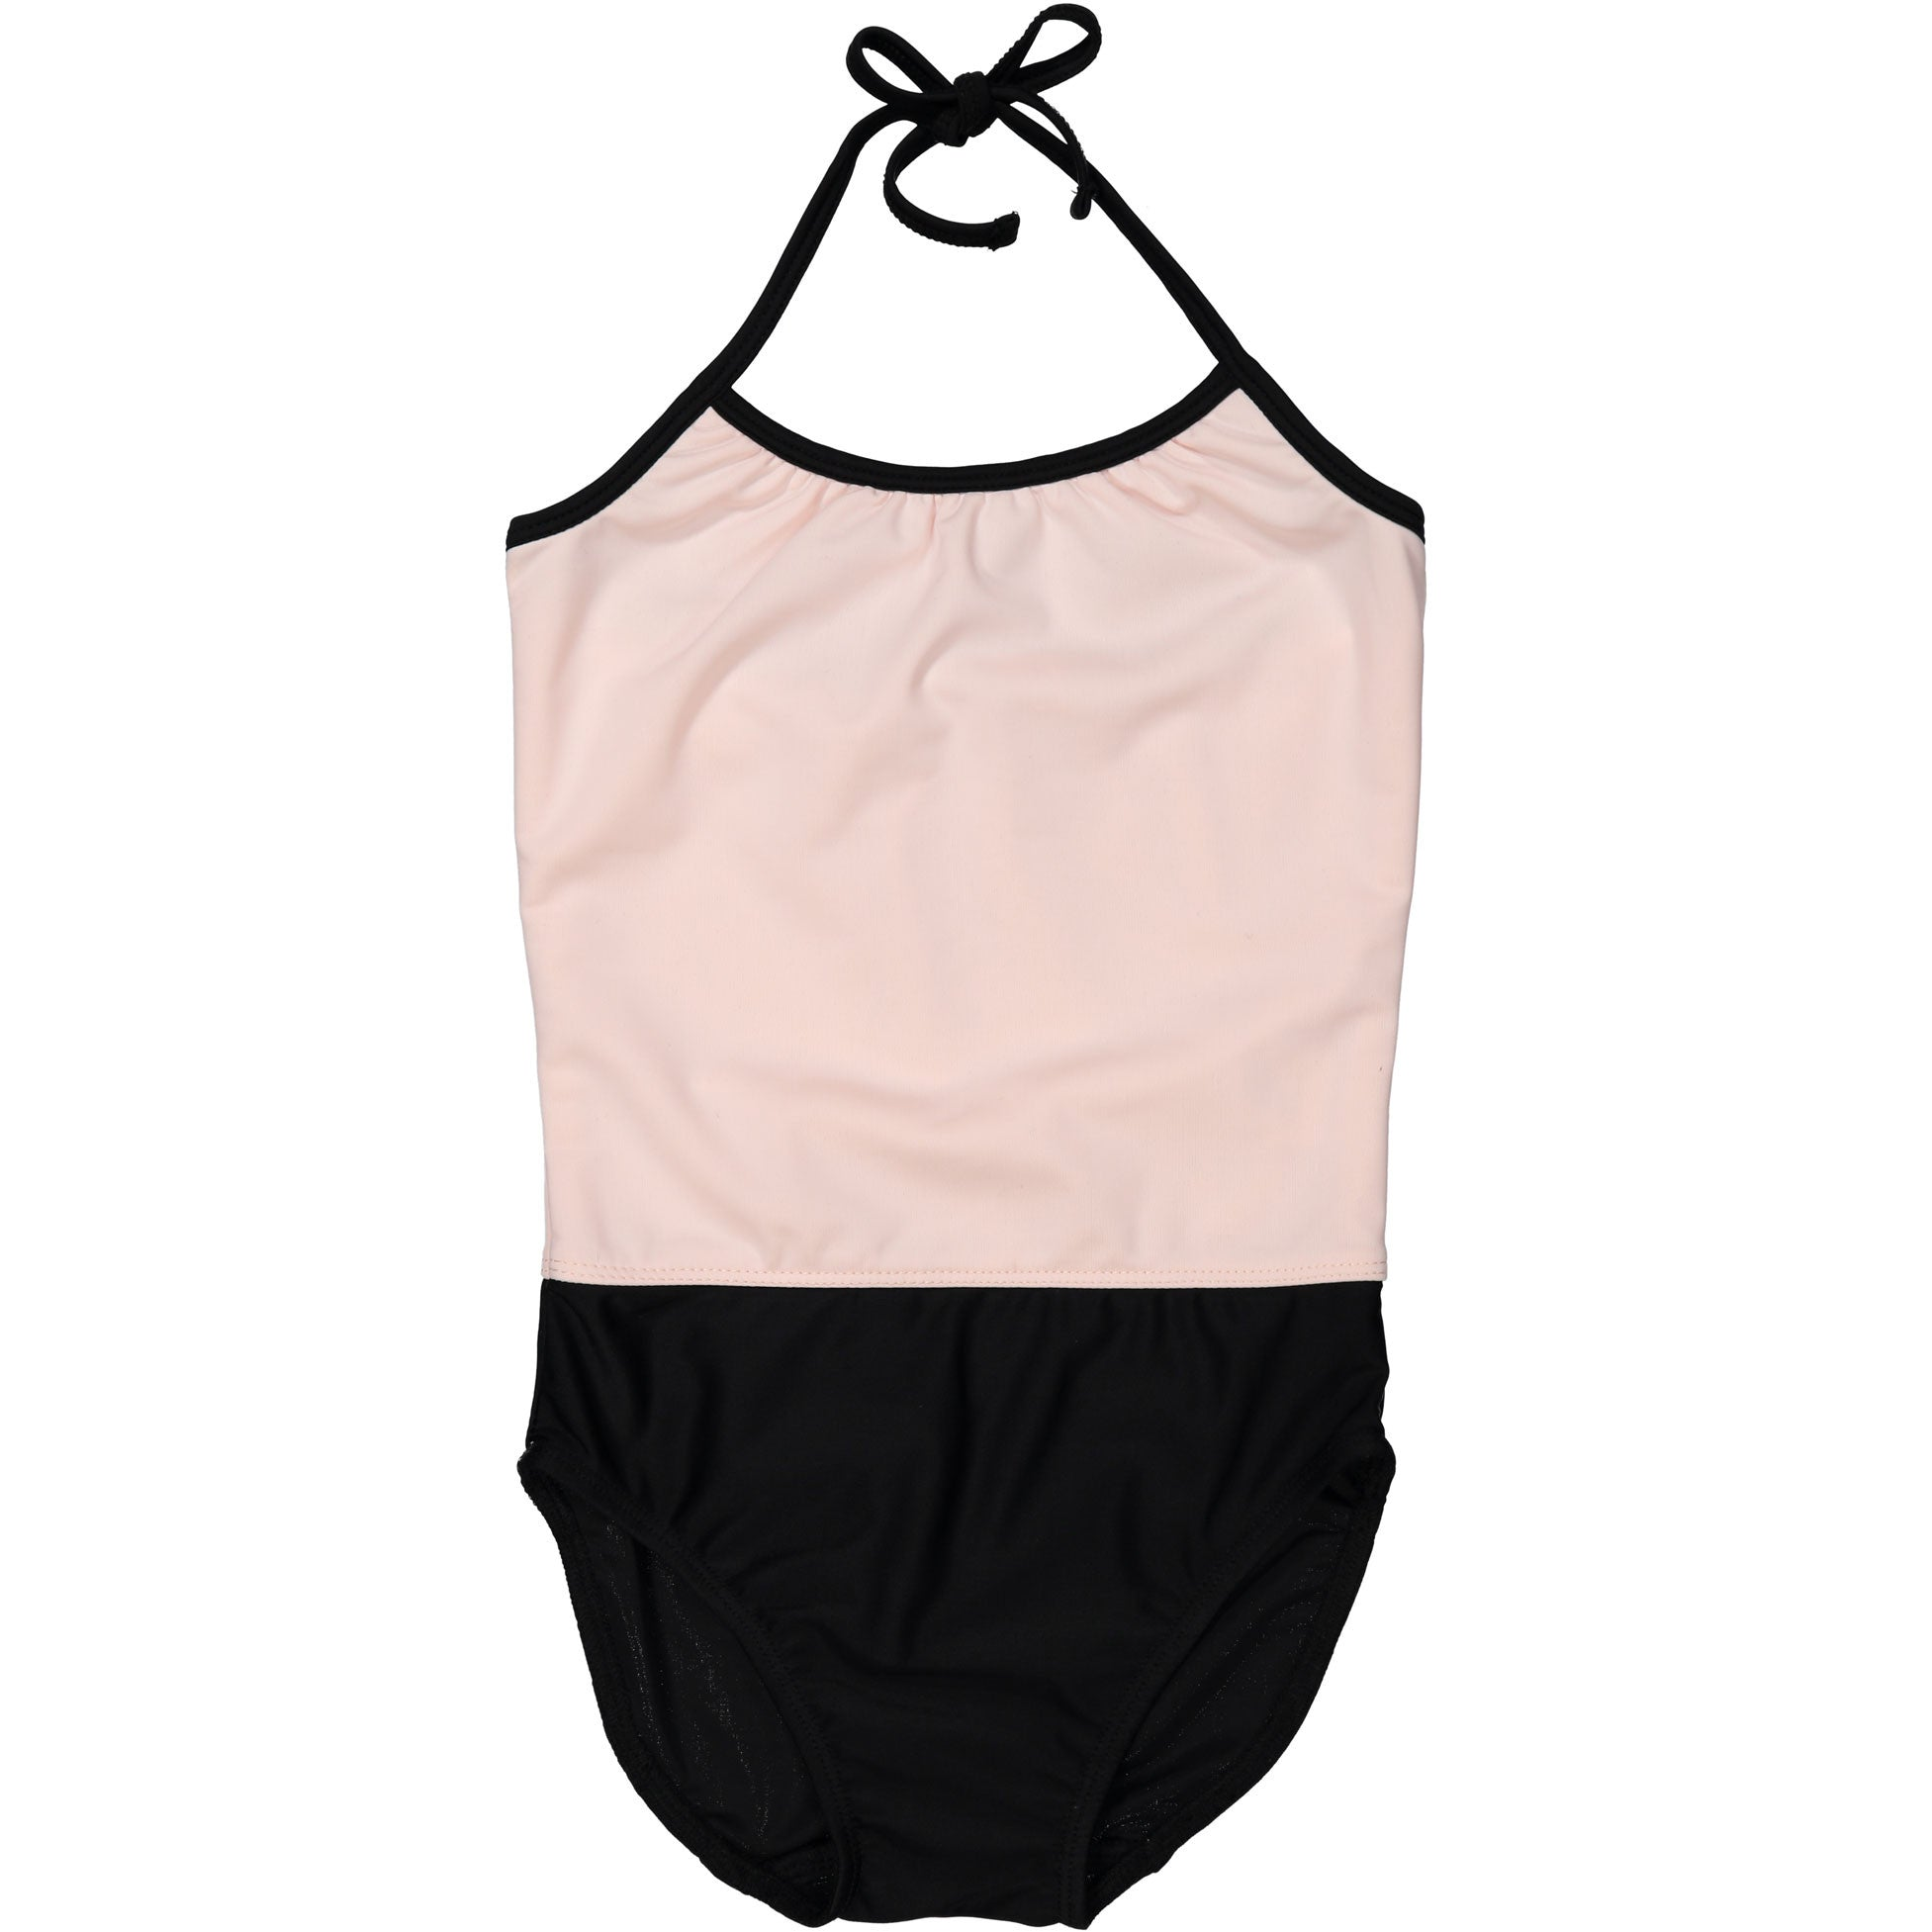 Coco Blanc Pale Pink/Black Swimsuit - Ladida